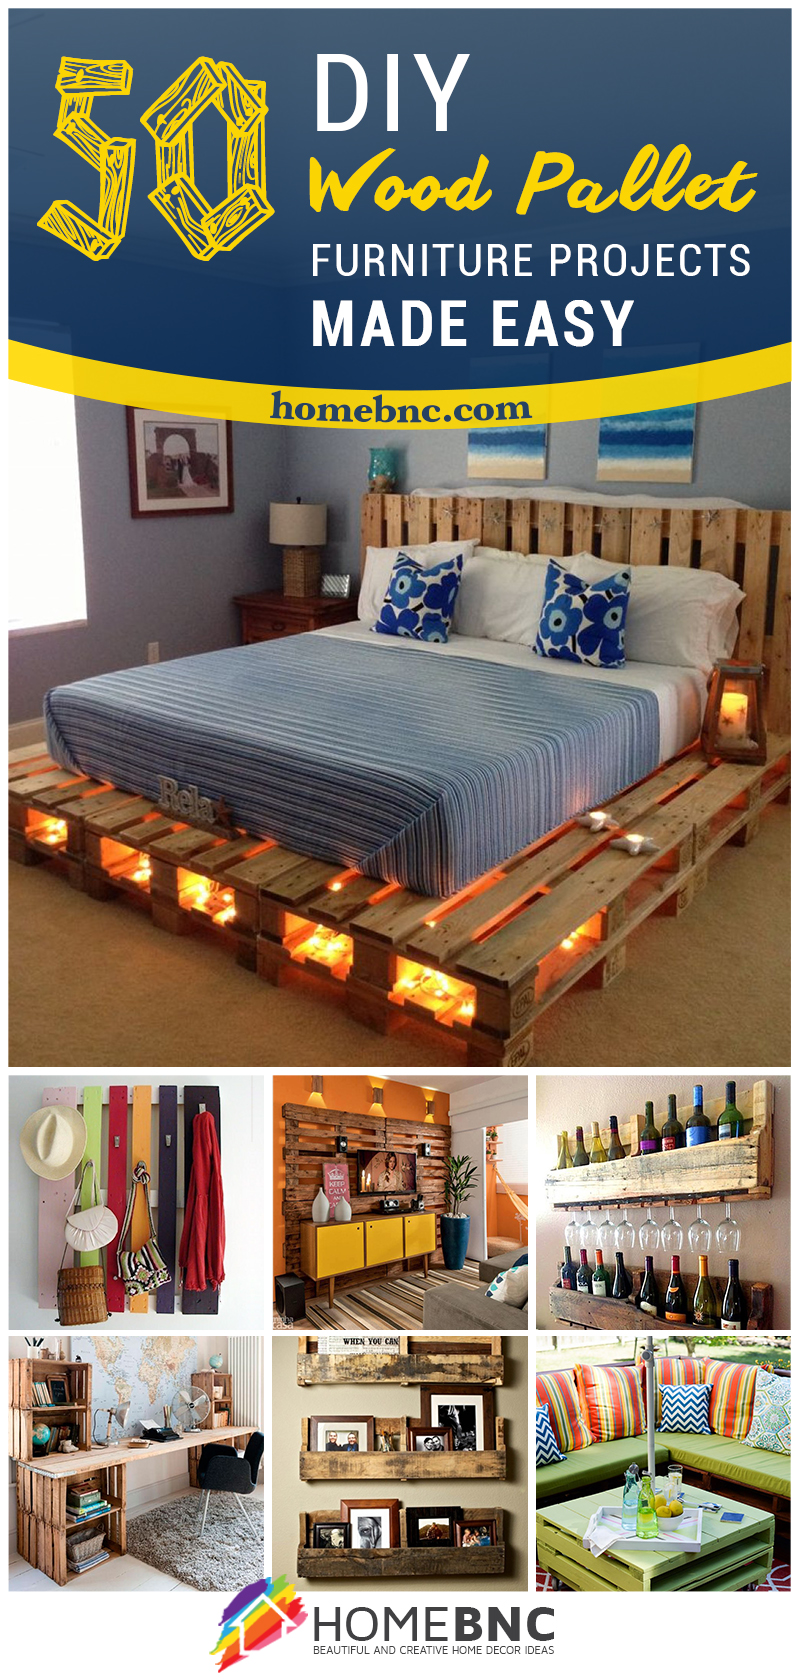 50 Best Creative Pallet Furniture Design Ideas for 2017 on Pallet Design  id=36185